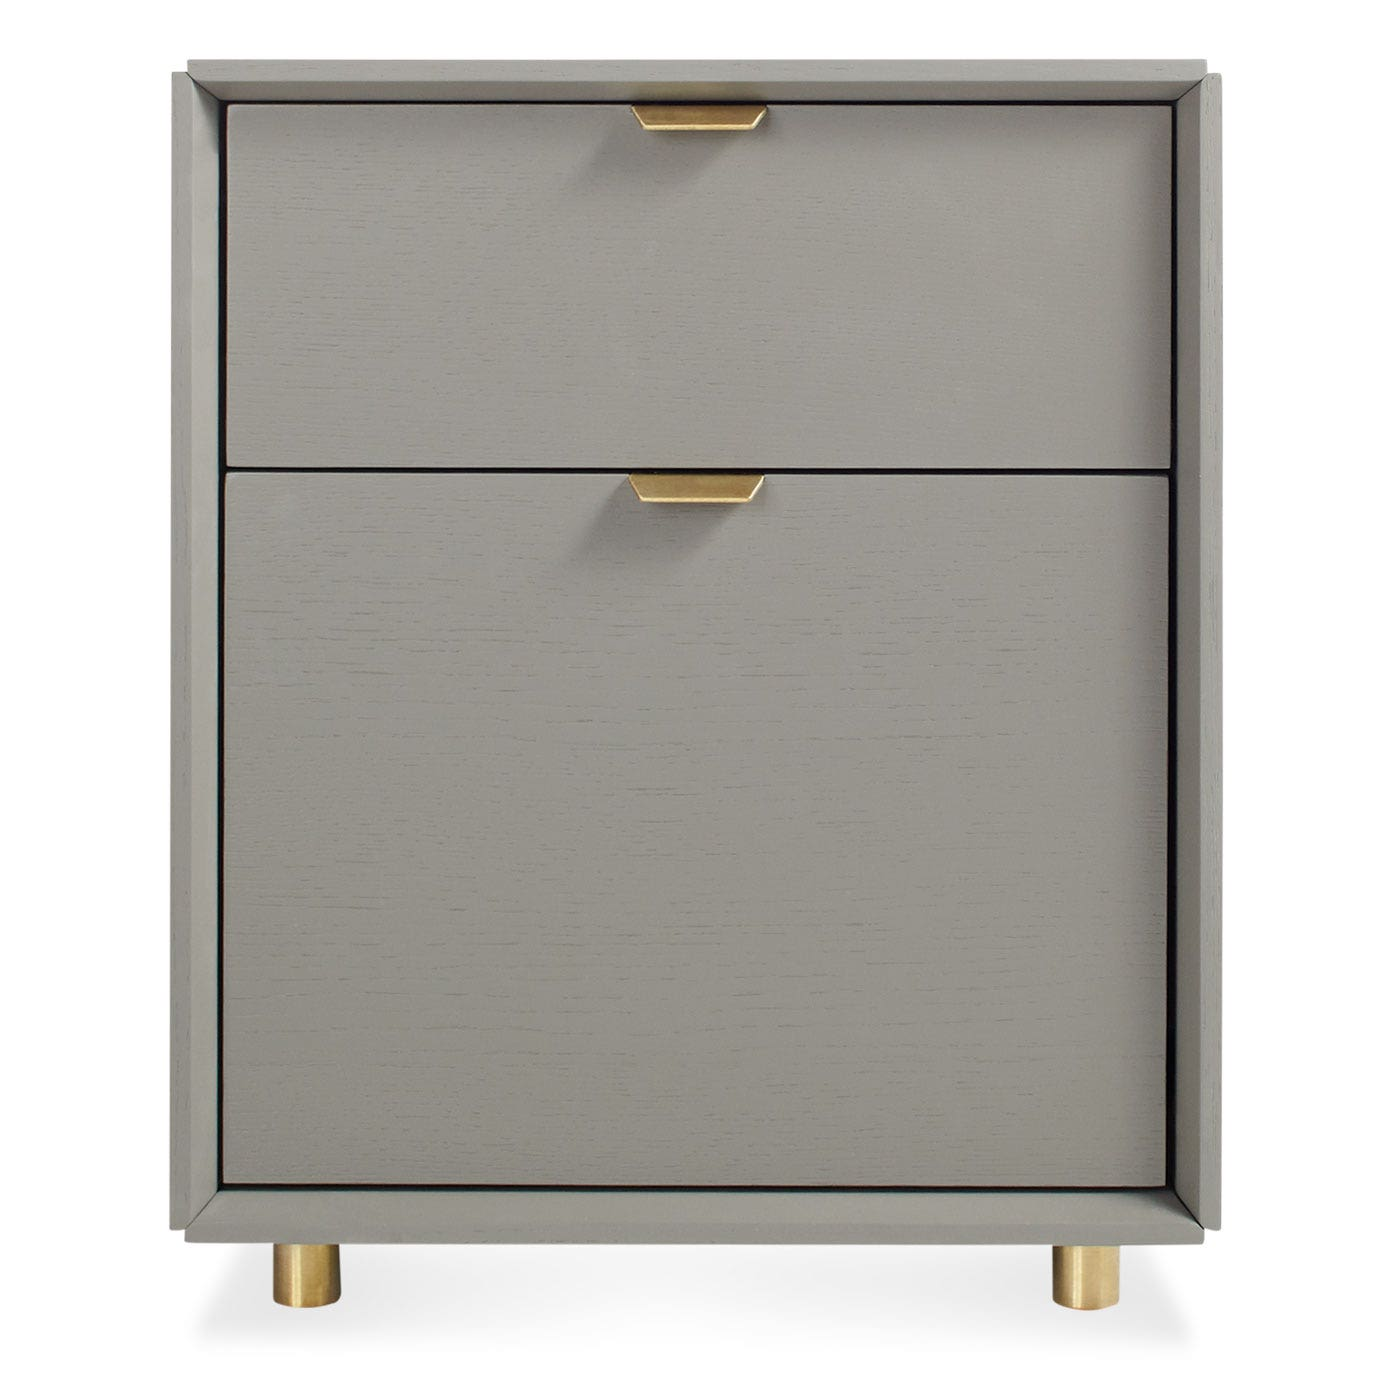 Delightful Customize The Drawer Colors Of This Unique Filing Cabinet To Your Style!  Mix And Match With 6 Unique Drawer